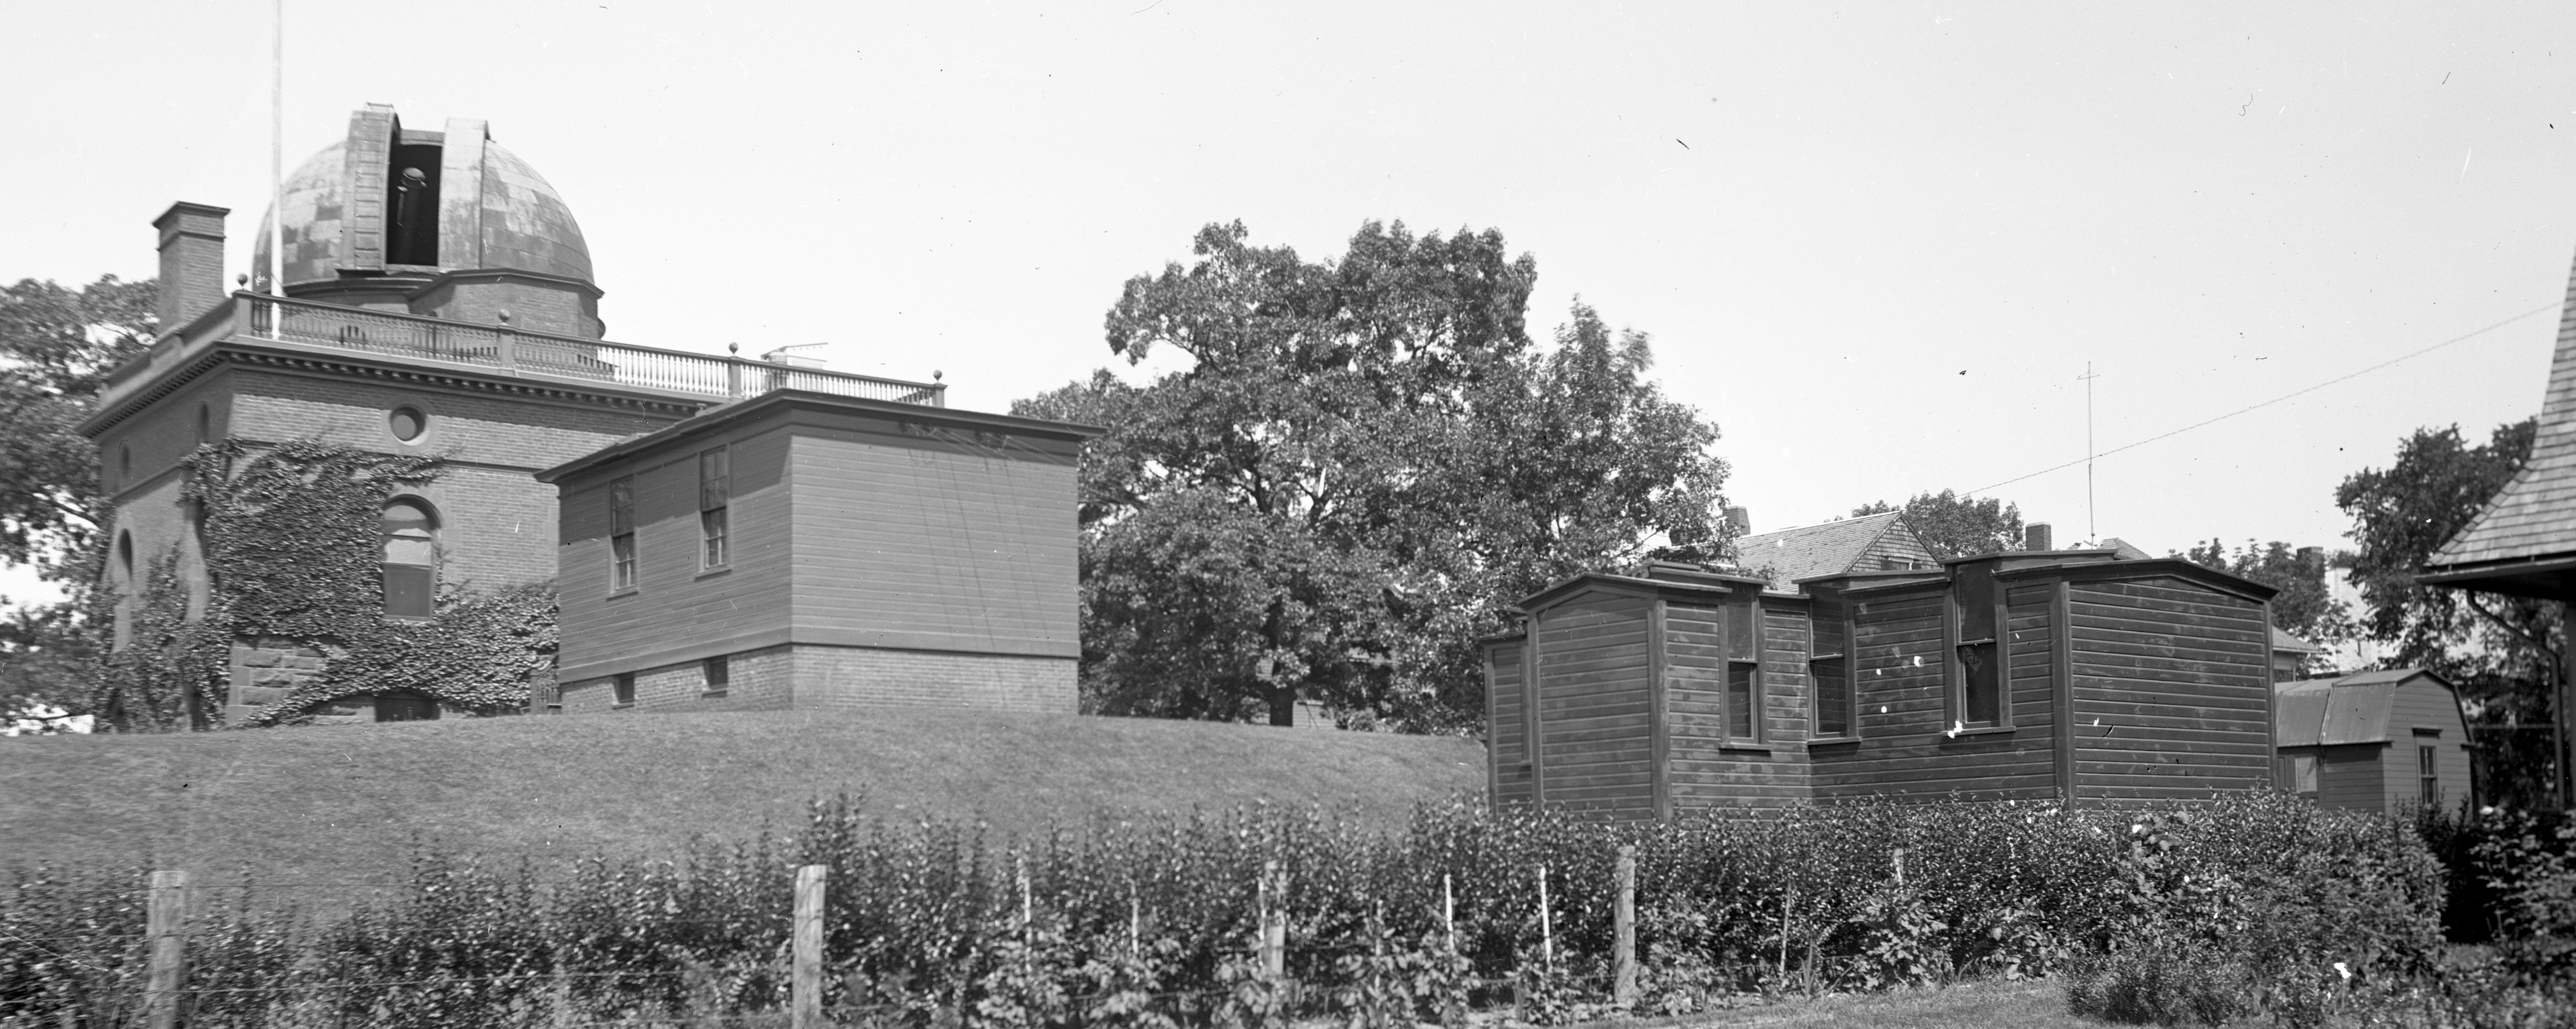 Ladd Observatory and transit shed